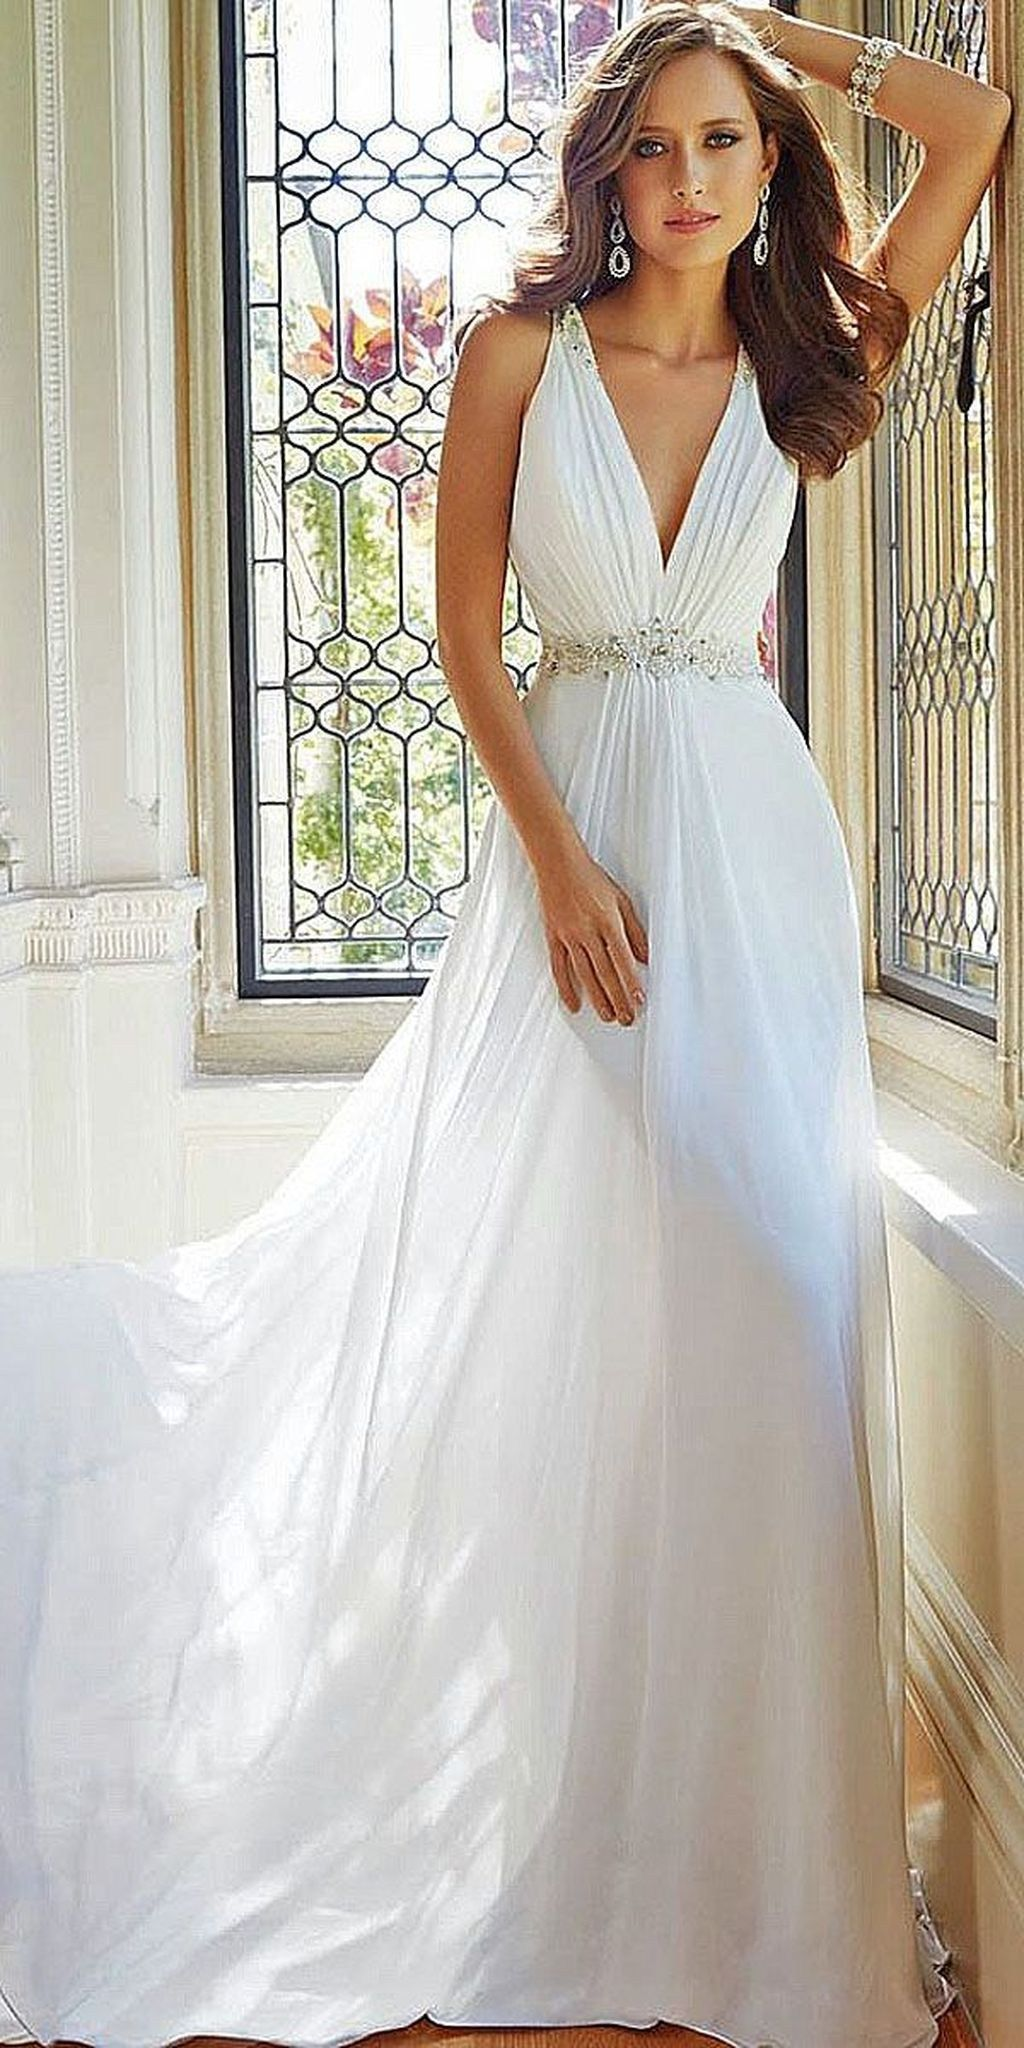 Awesome beach wedding dresses ideas dress ideas and beach